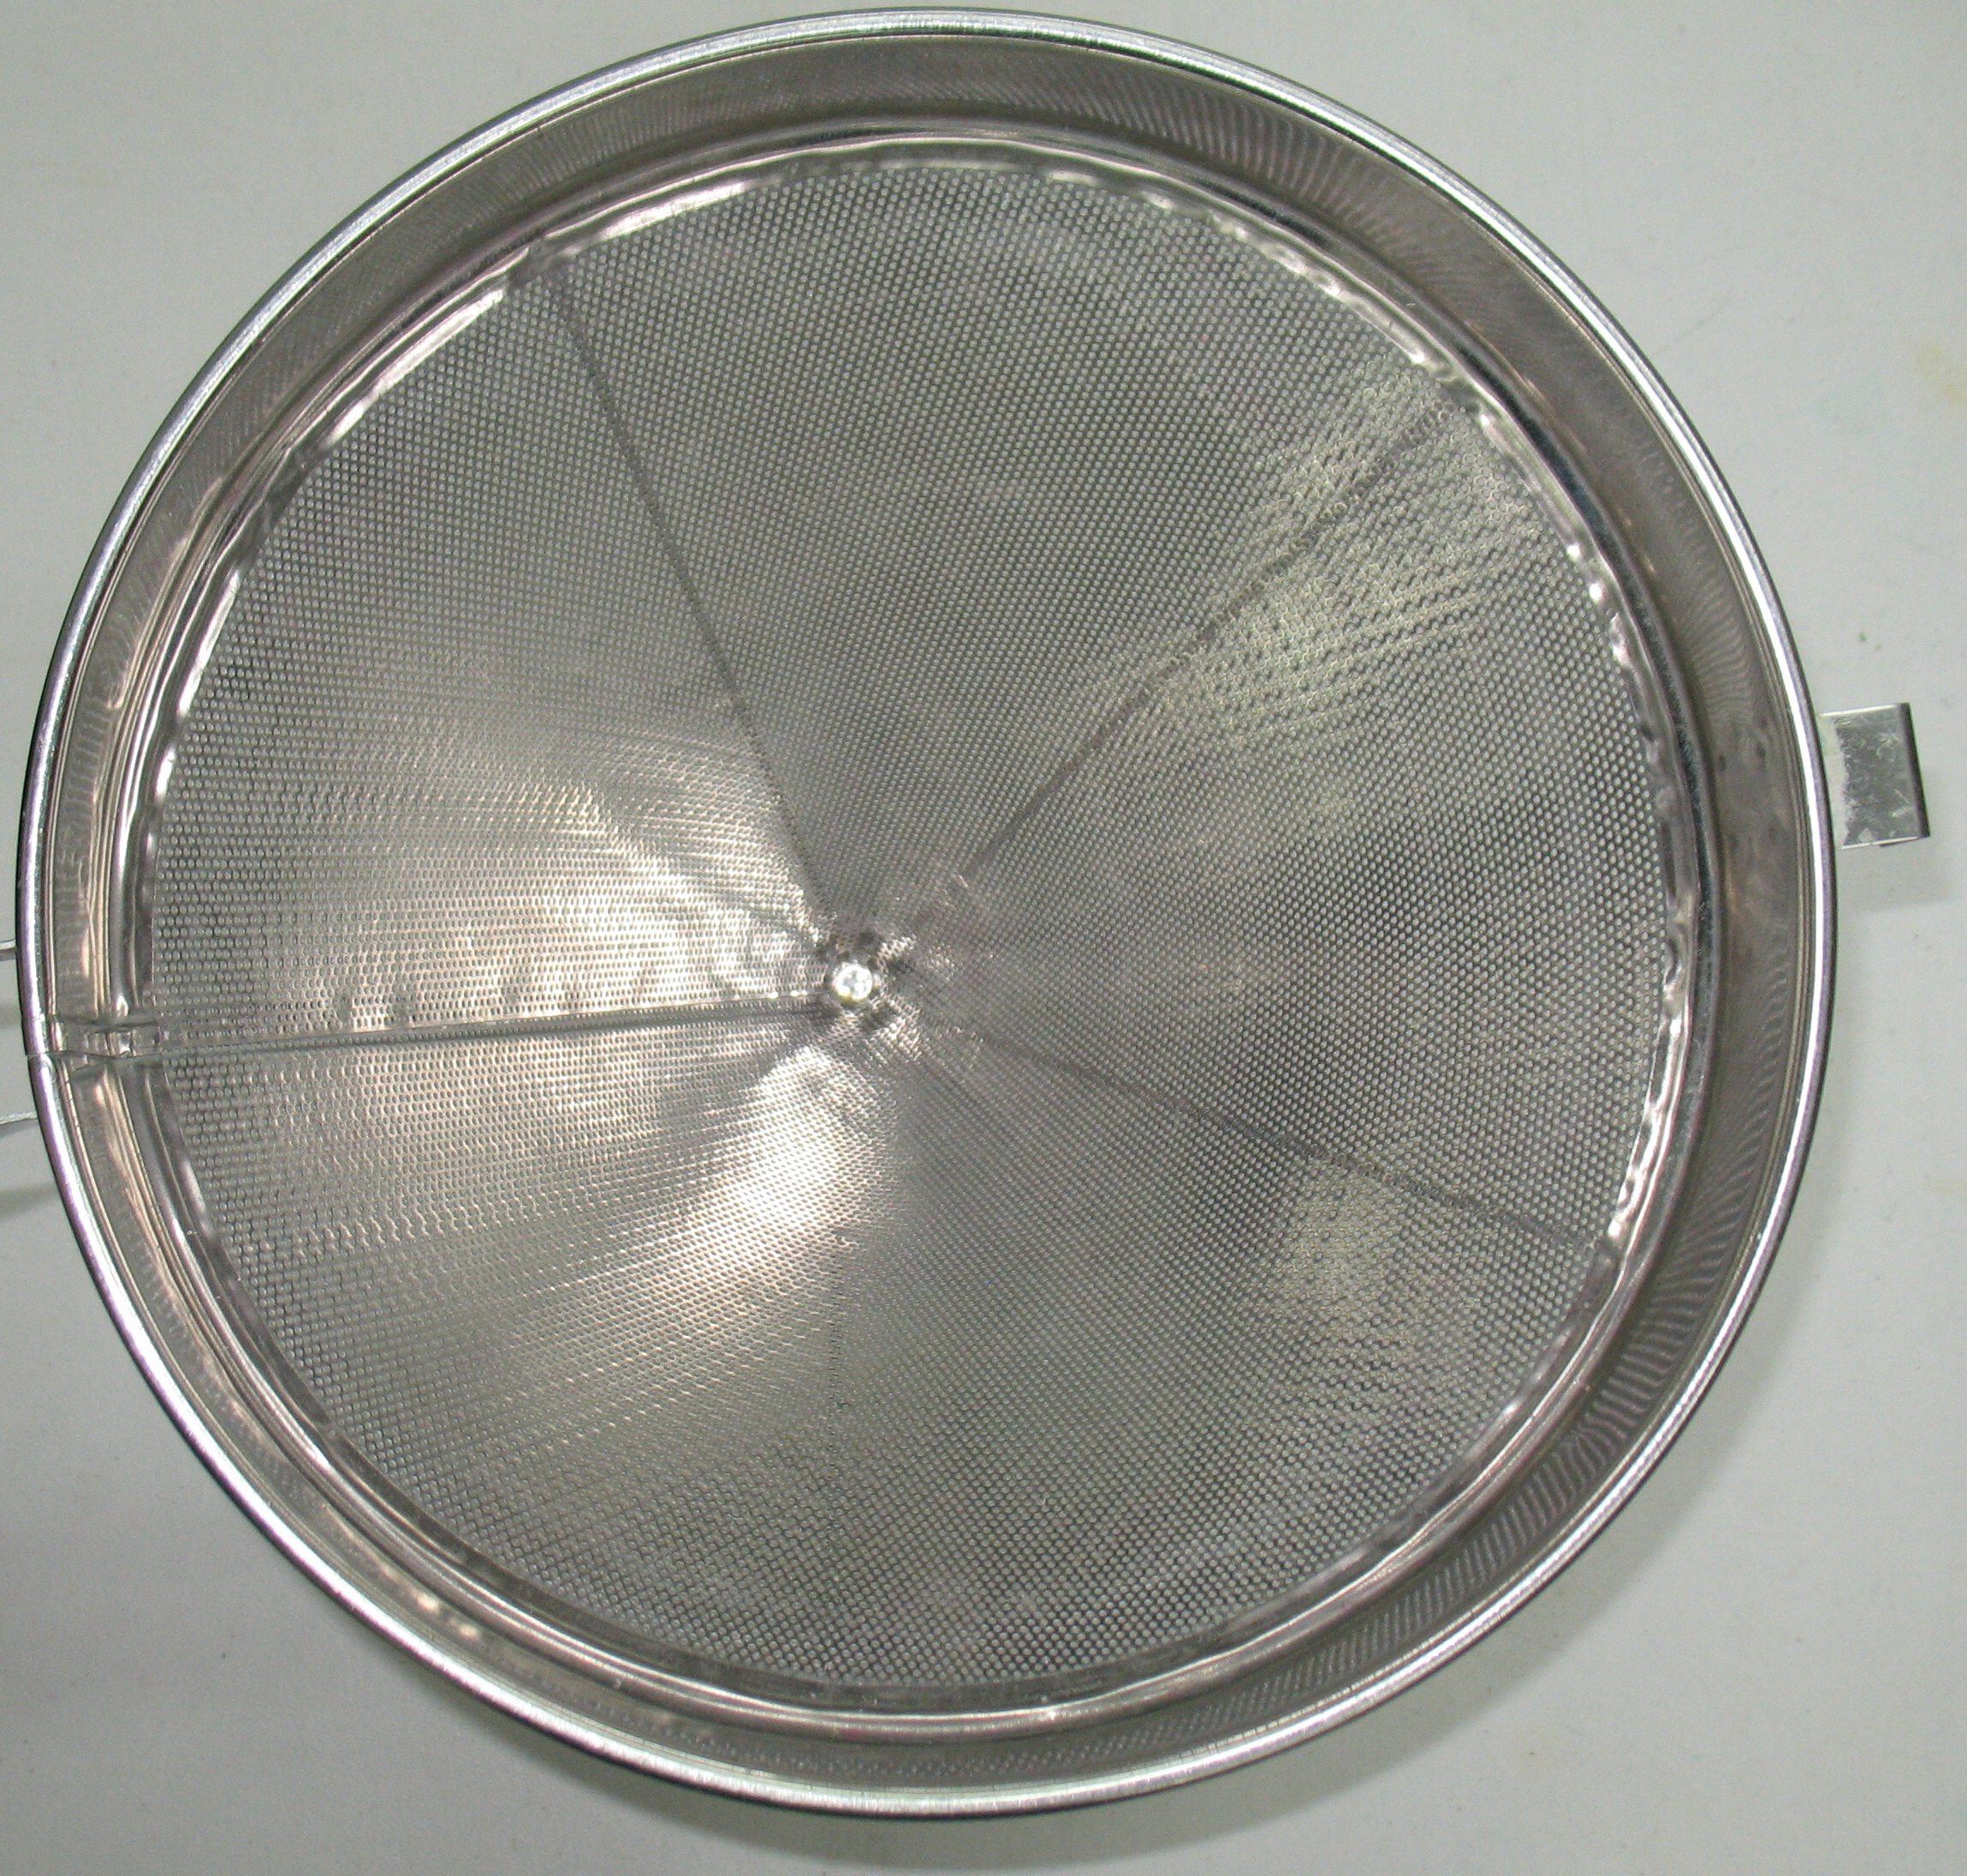 Top view inside the cone of the large strainer